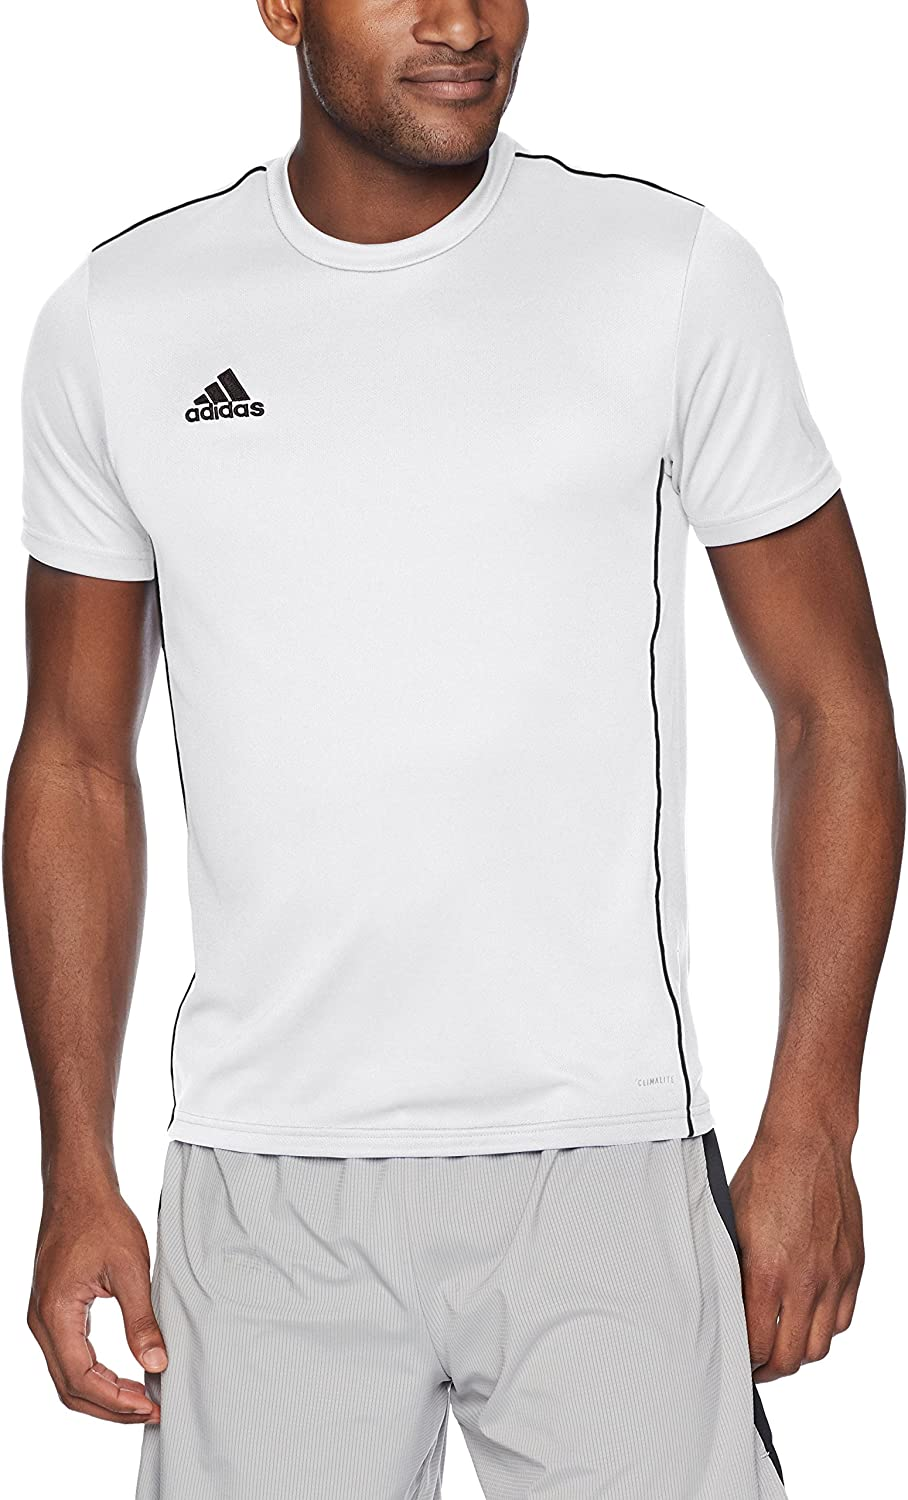 adidas Men's Core 18 Training Jersey : Clothing